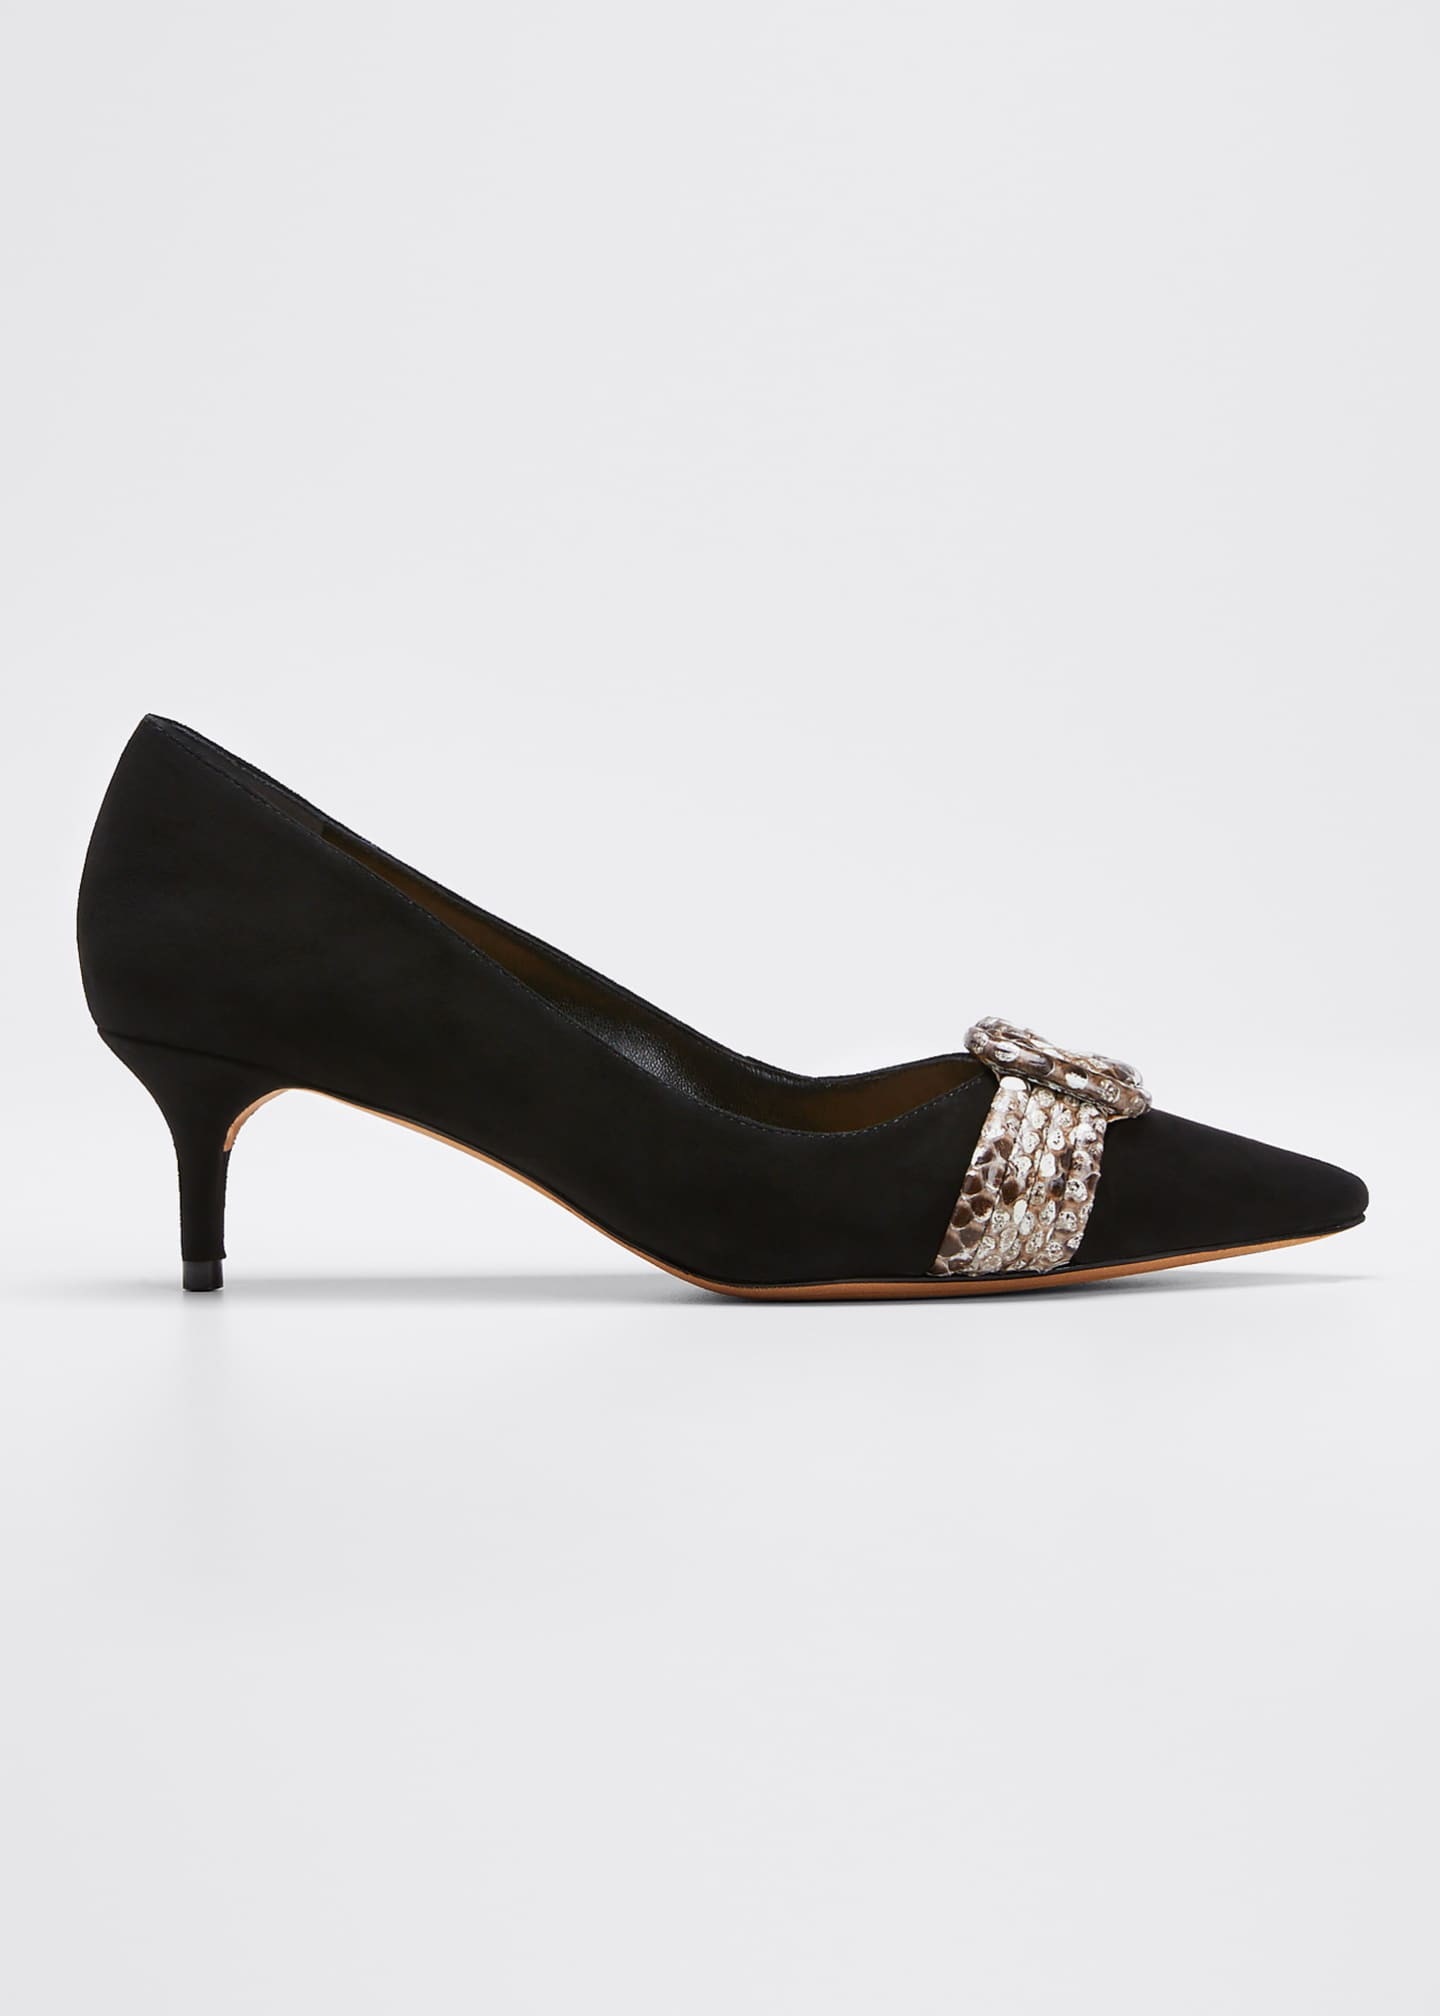 Alexandre Birman Vicky Kitten-Heel Pumps with Python